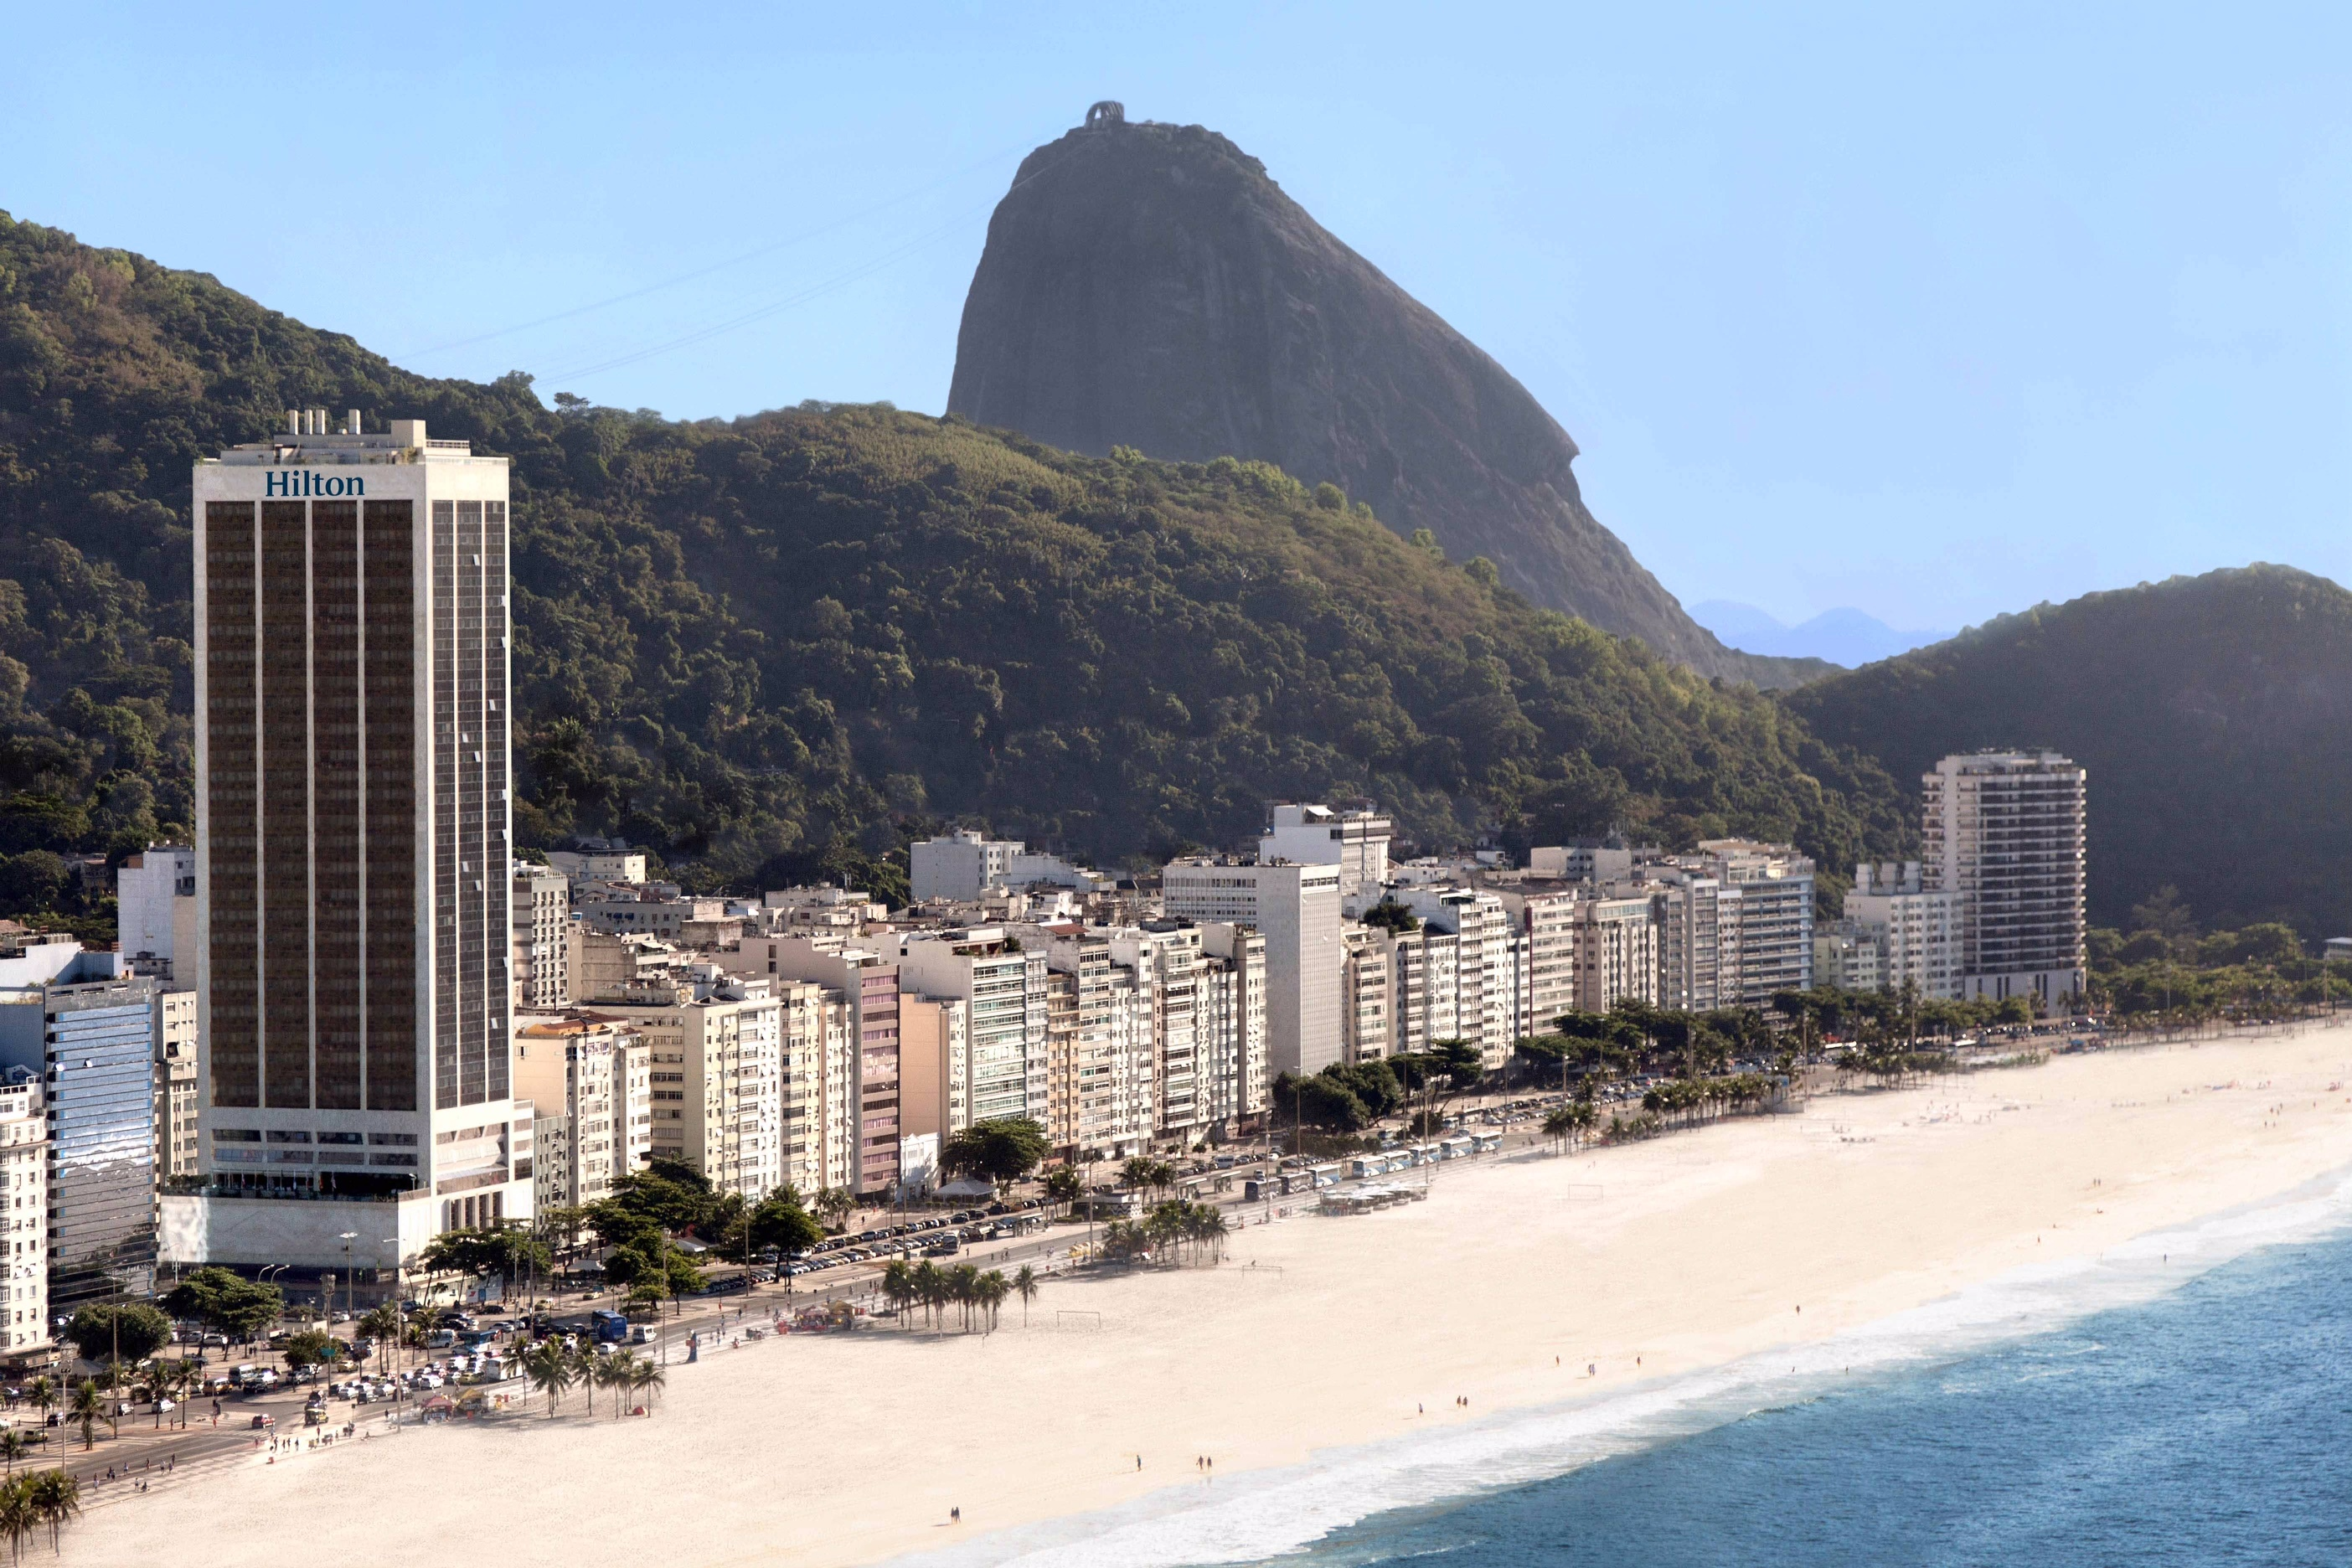 Hilton (NYSE: HLT) today announced the opening of Hilton Rio de Janeiro Copacabana, marking a significant milestone as the company's 100th hotel in Latin America. (Photo: Business Wire)